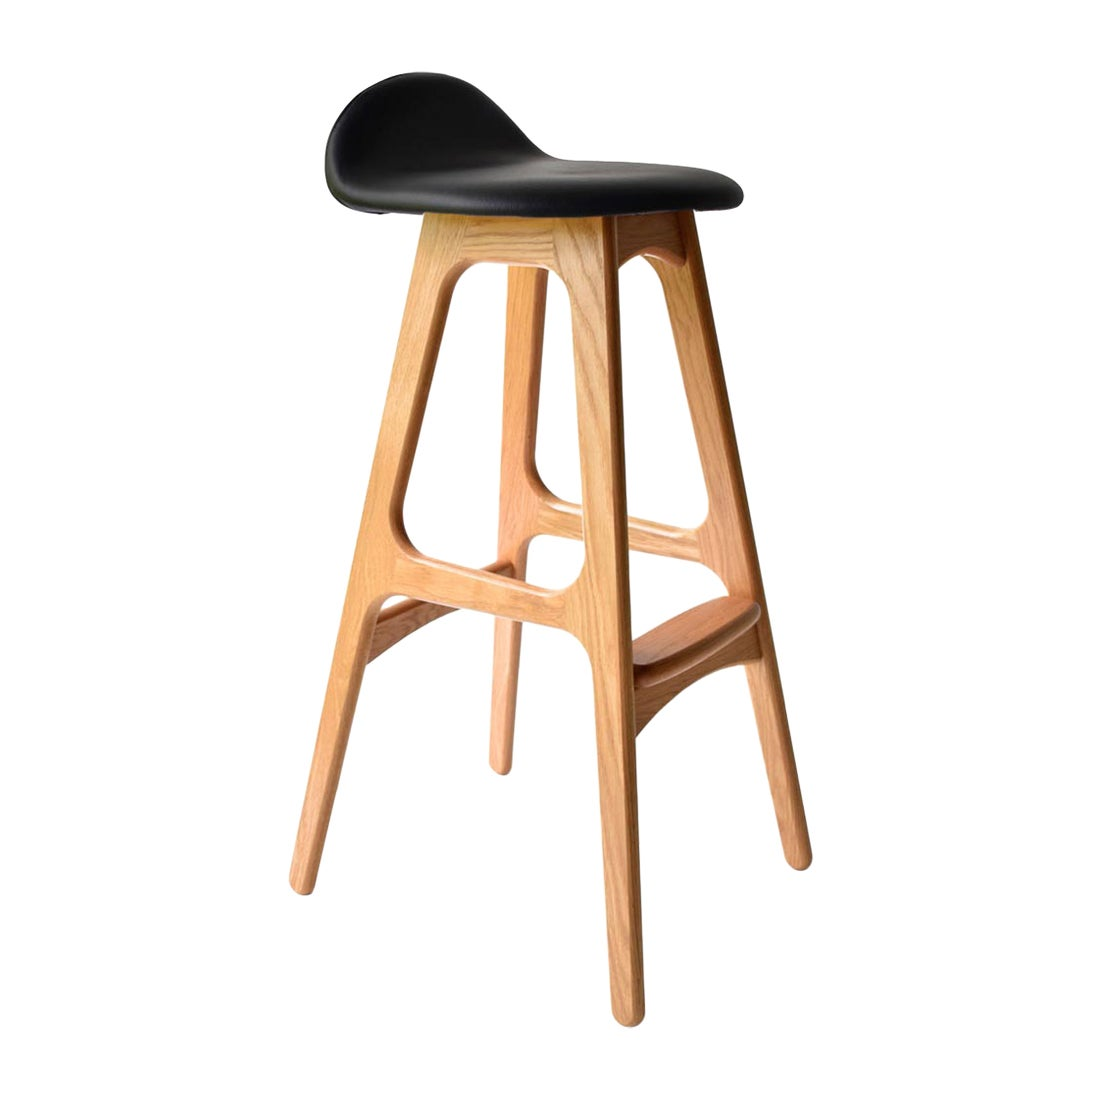 Erik Buch Model 61 Midcentury Counter Stool in Oak